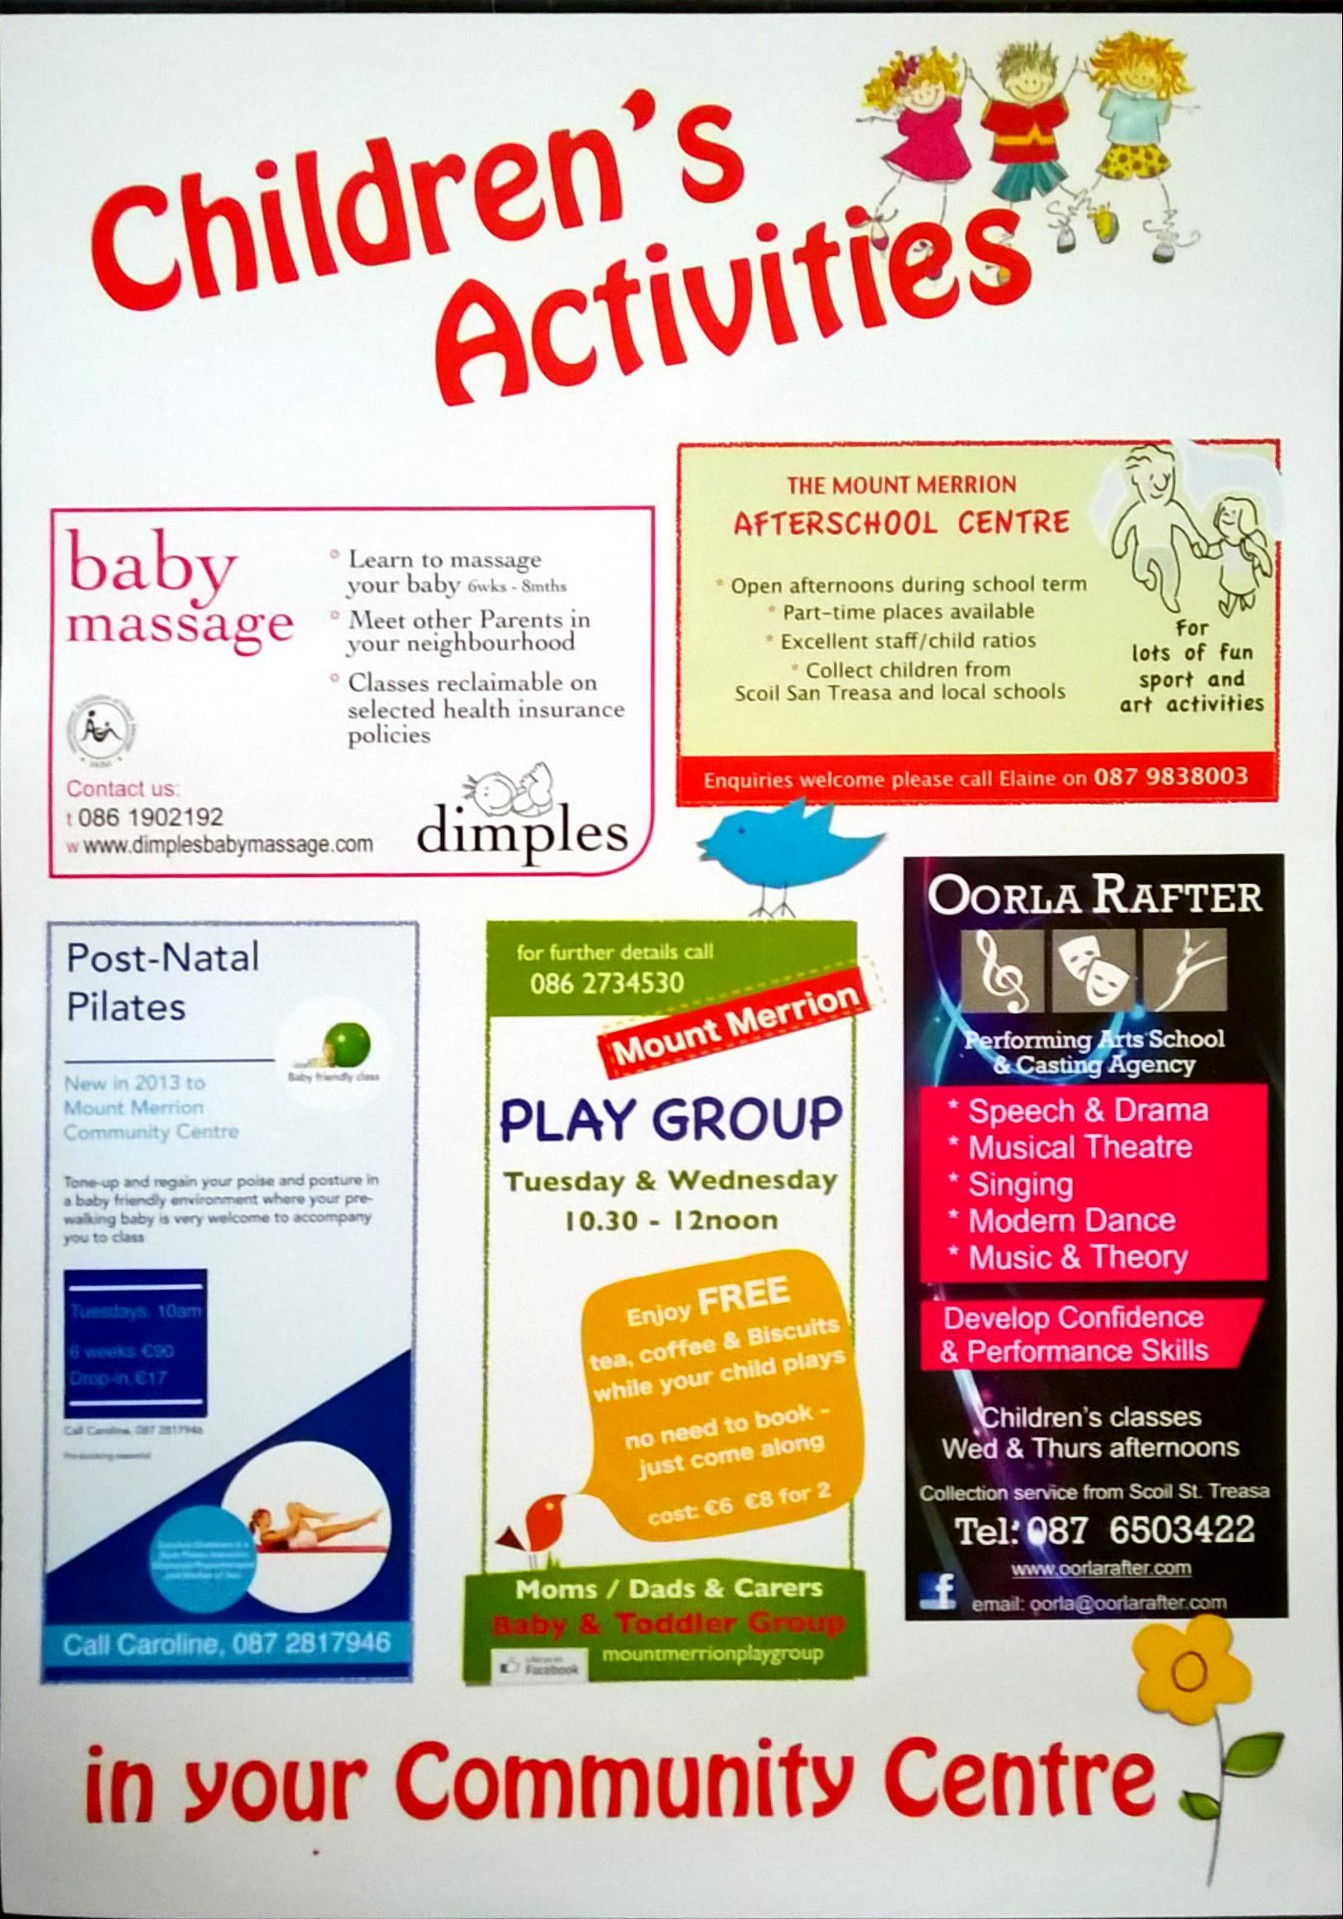 Baby Massage, After School Centre, Post-Natal Pilates, Play Group, Speech & Drama, Musical Theatre, Singing, Modern Dance.